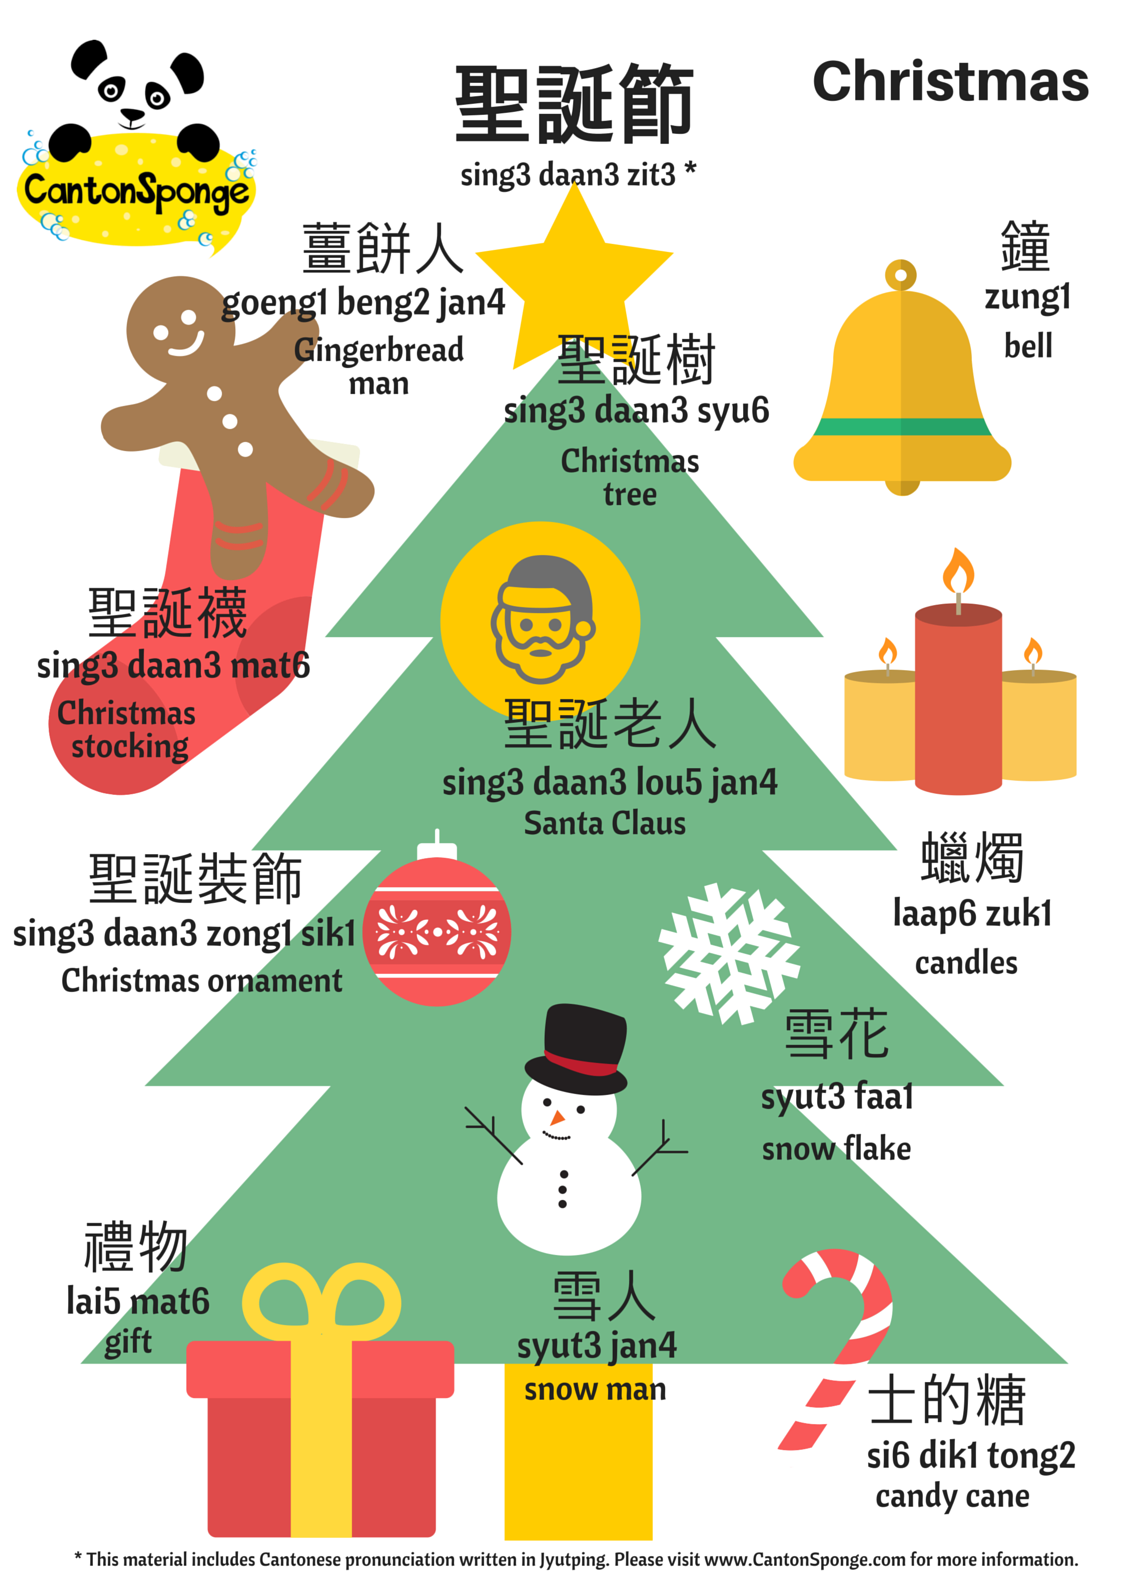 bilingual english chinese christmas poster with clear cantonese pronunciation to learn more cantonese wwwcantonspongecom